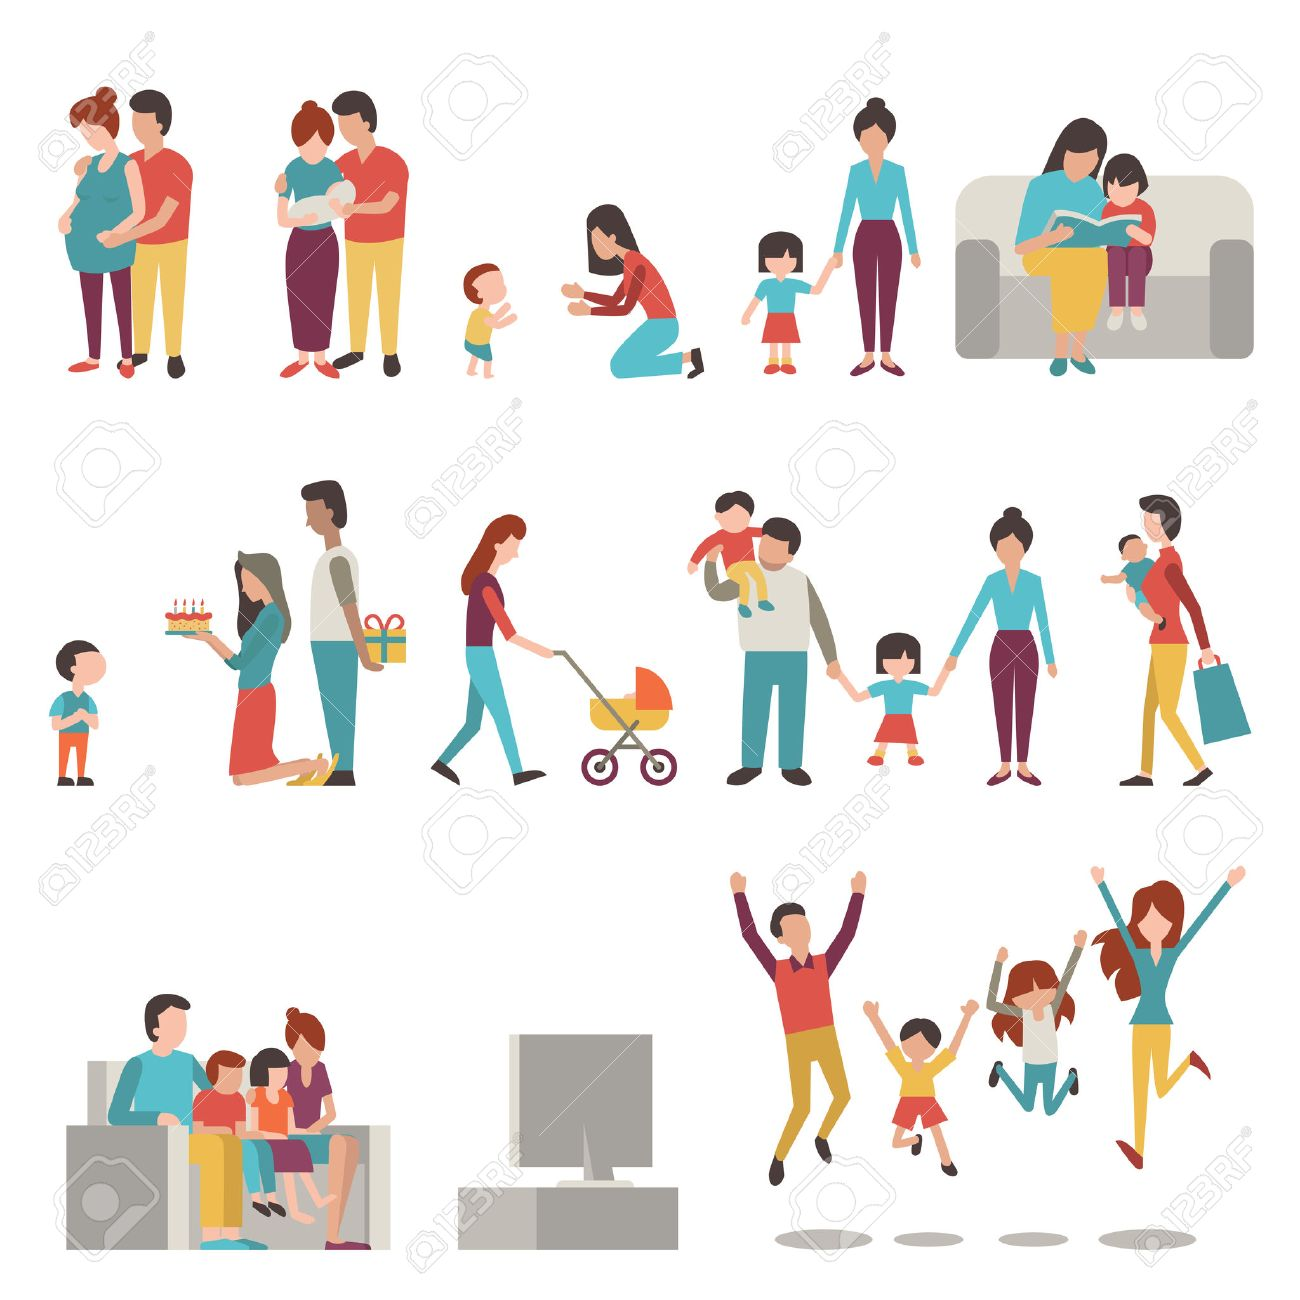 illustration character set of parents, mother, father with kids. Family, pregnant, holding baby, learning to walk, go shopping, give birthday cake and present, jumping in happiness. - 53926658